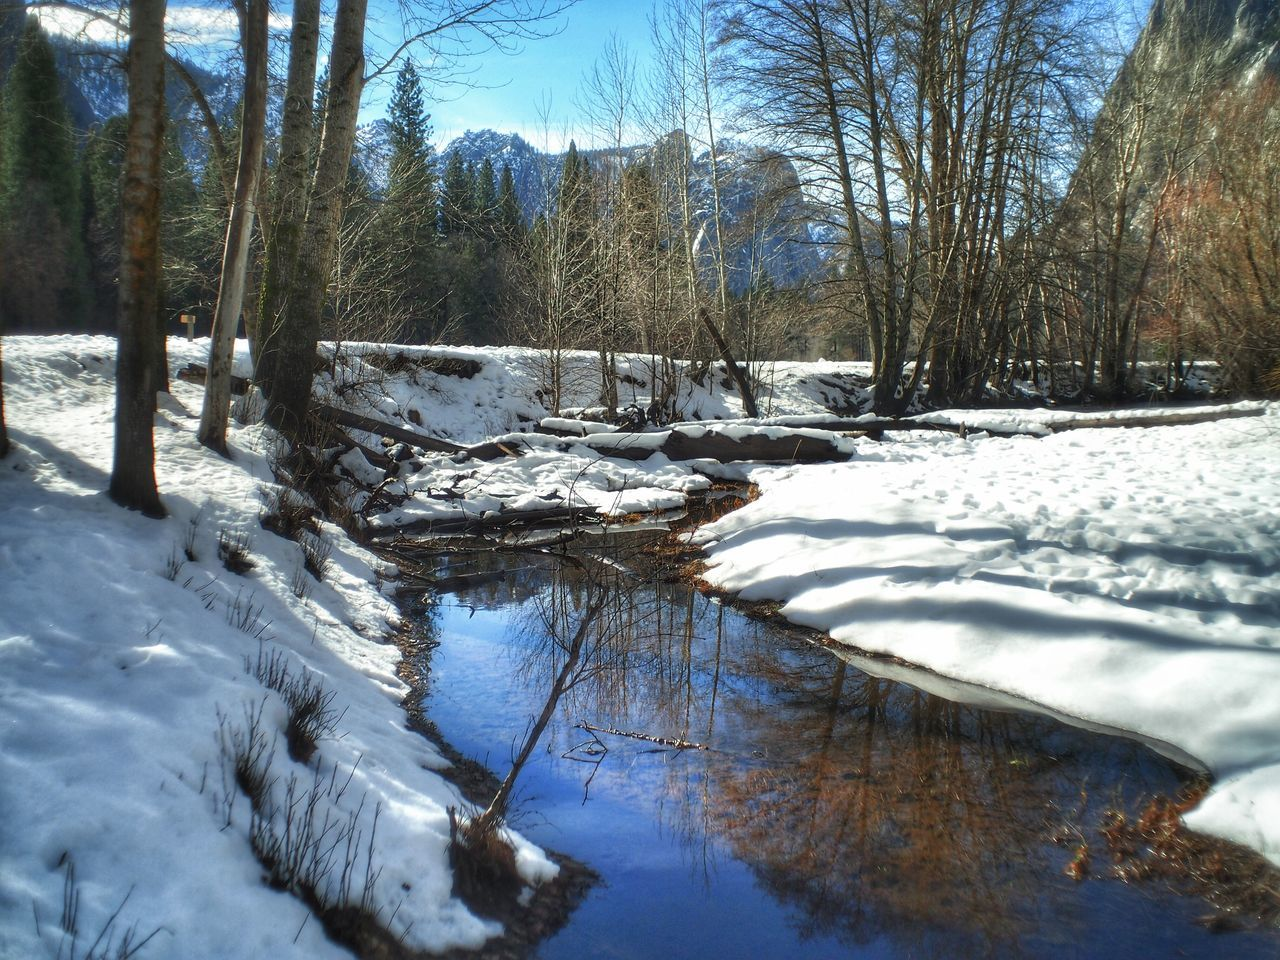 Reflection Of Bare Trees On Stream Amidst Snowcapped Field During Winter